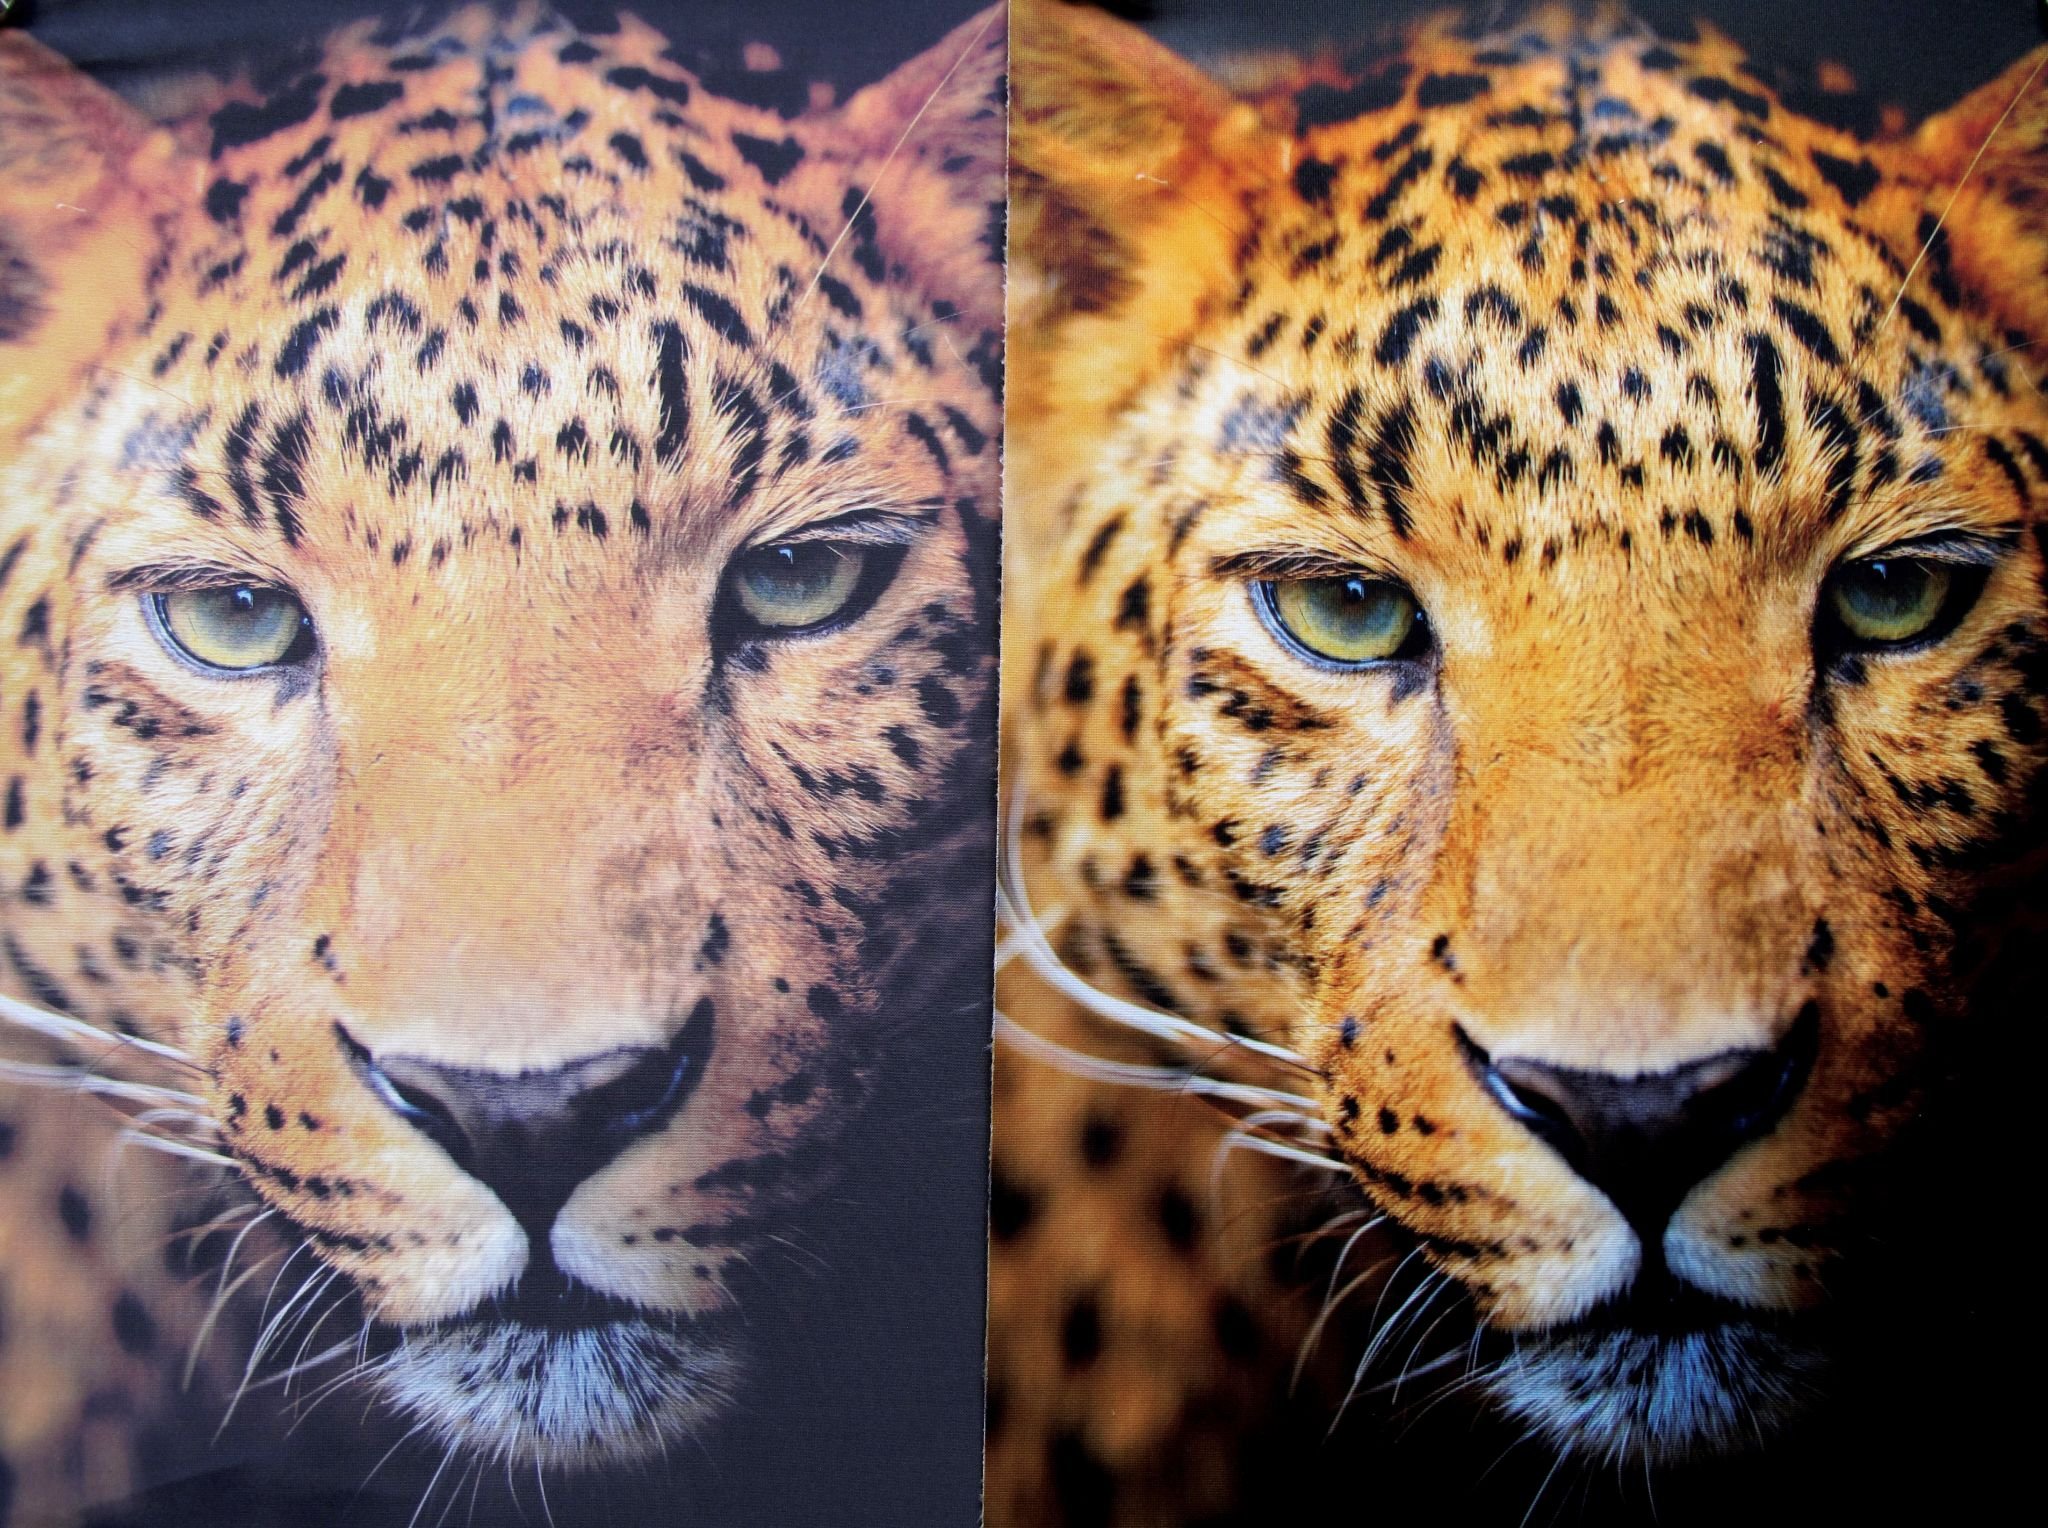 dye sublimation vs inkjet